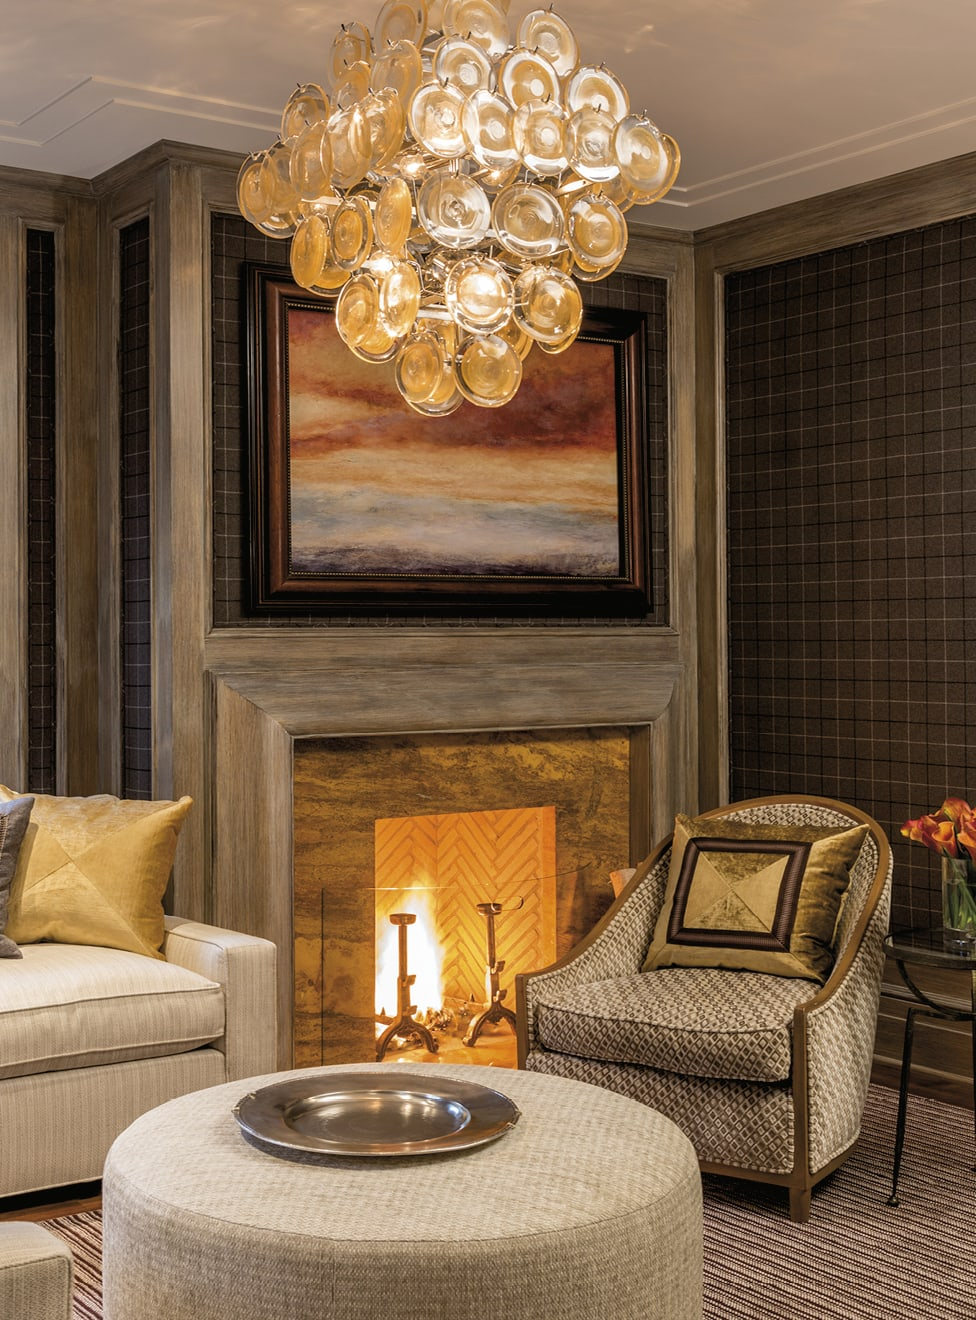 Sitting area with plaid walls and a fireplace